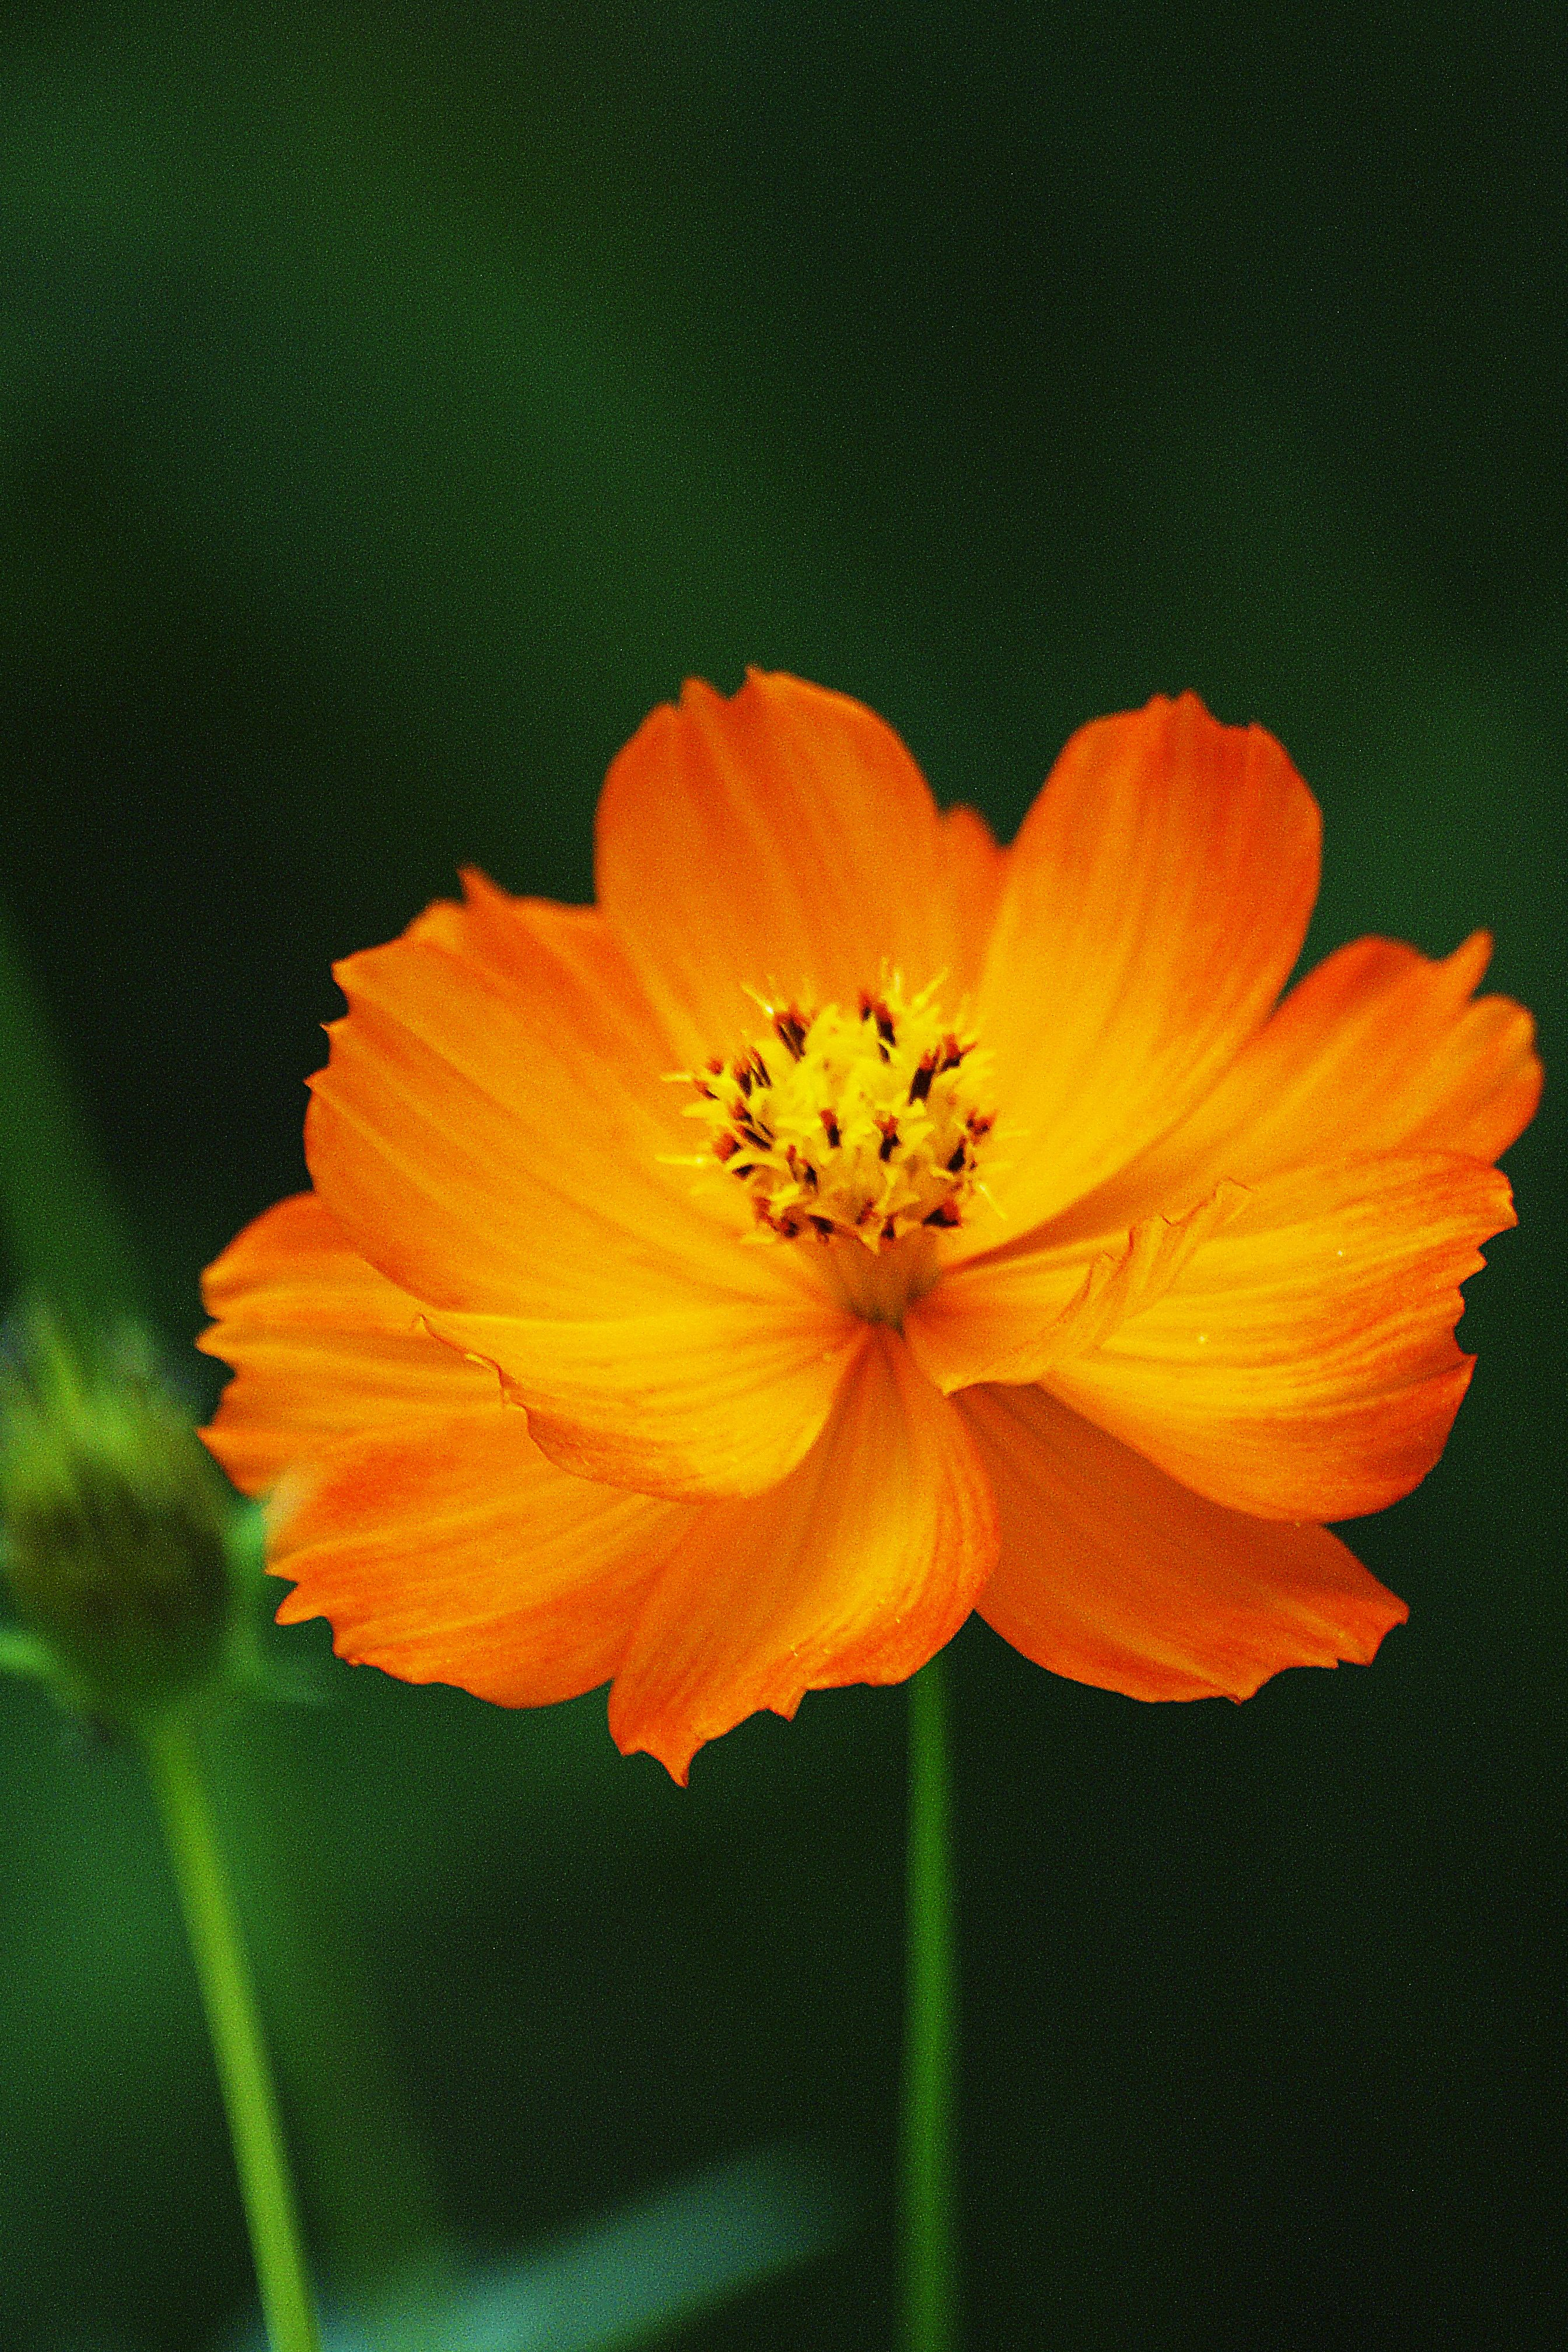 Orange Cosmos J S Grows 2 Tall The Shortest Of Her Cosmos Pansies Flowers Cosmos Flowers Flower Background Iphone